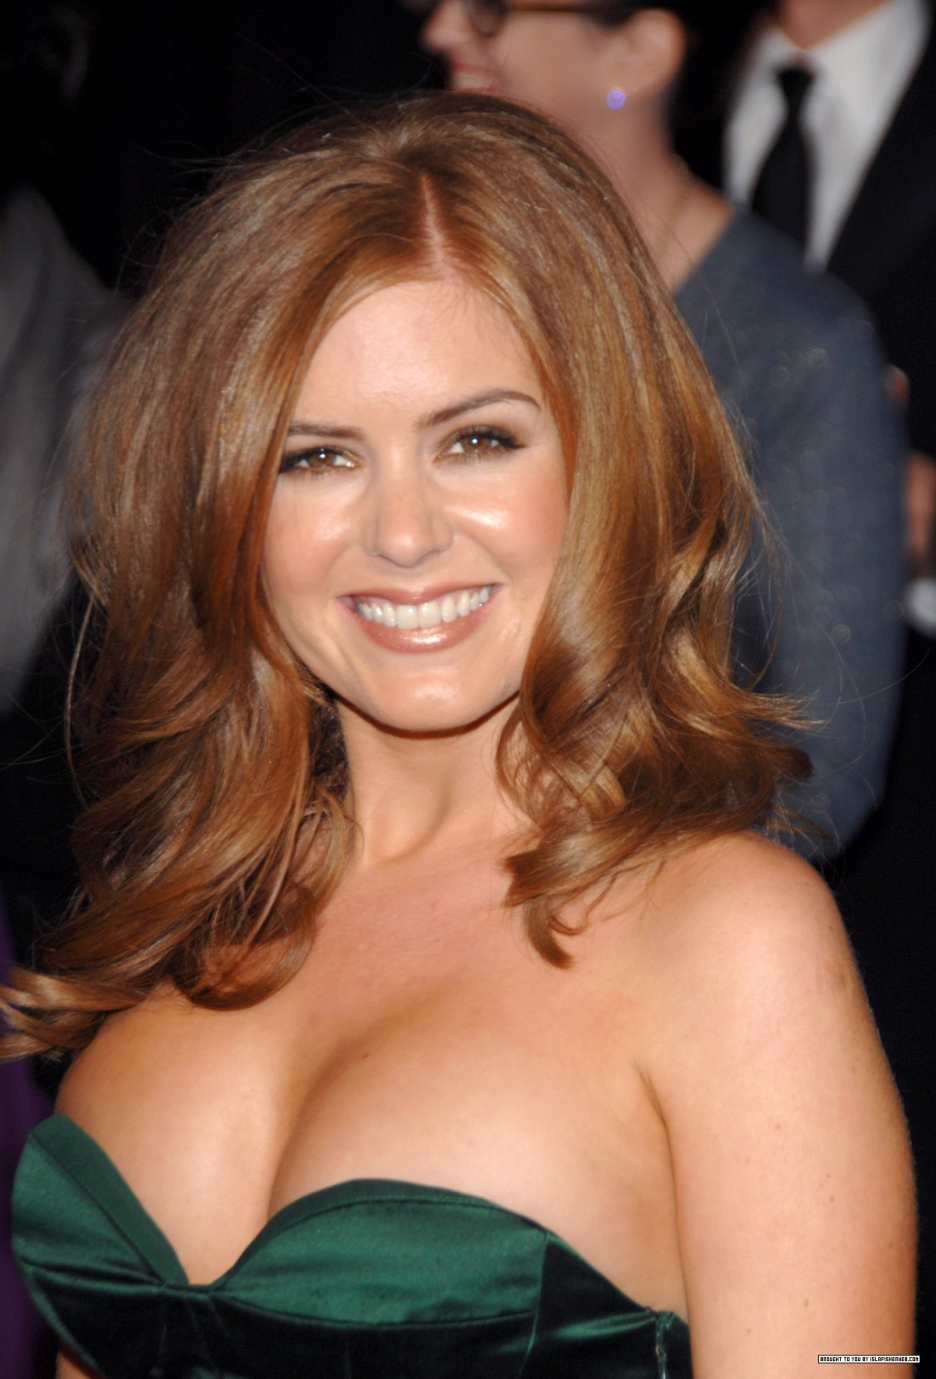 Cleavage Isla Fisher nude (51 photo), Is a cute